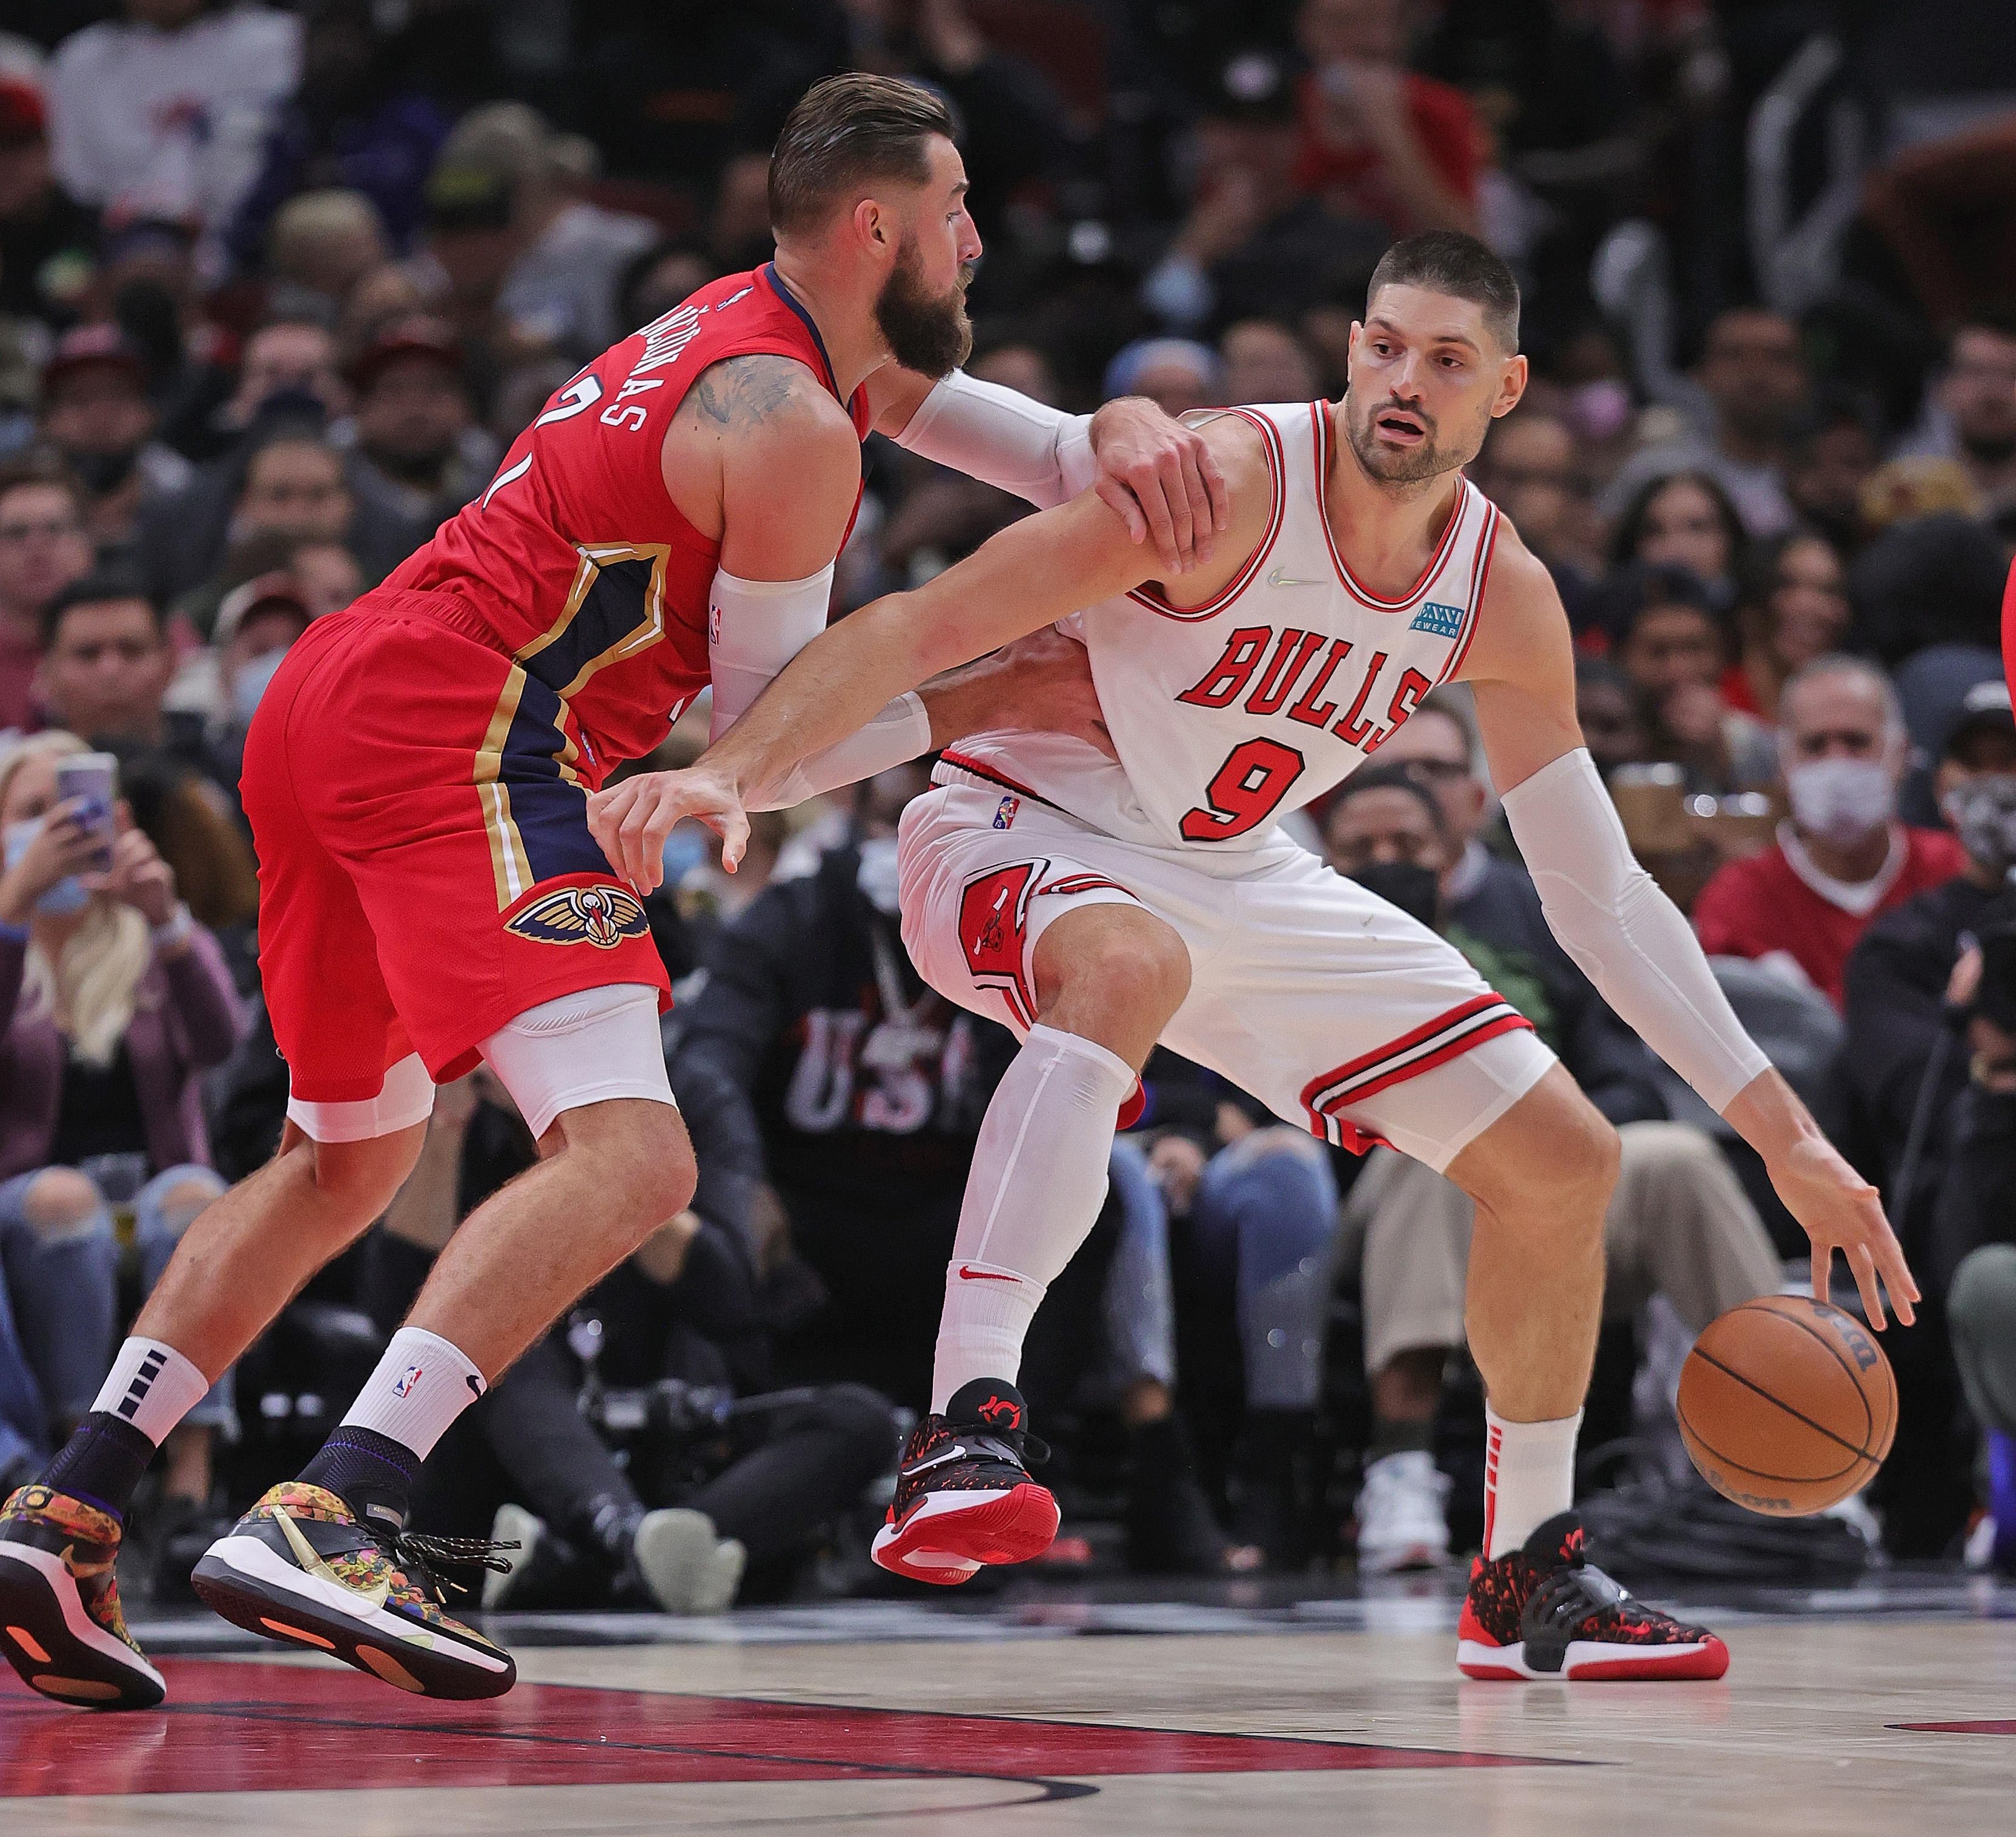 Nikola Vucevic #9 of the Chicago Bulls drives against Jonas Valanciunas #17 of the New Orleans Pelicans at the United Center on October 22, 2021 in Chicago, Illinois. The Bulls defeated the Pelicans 128-112.